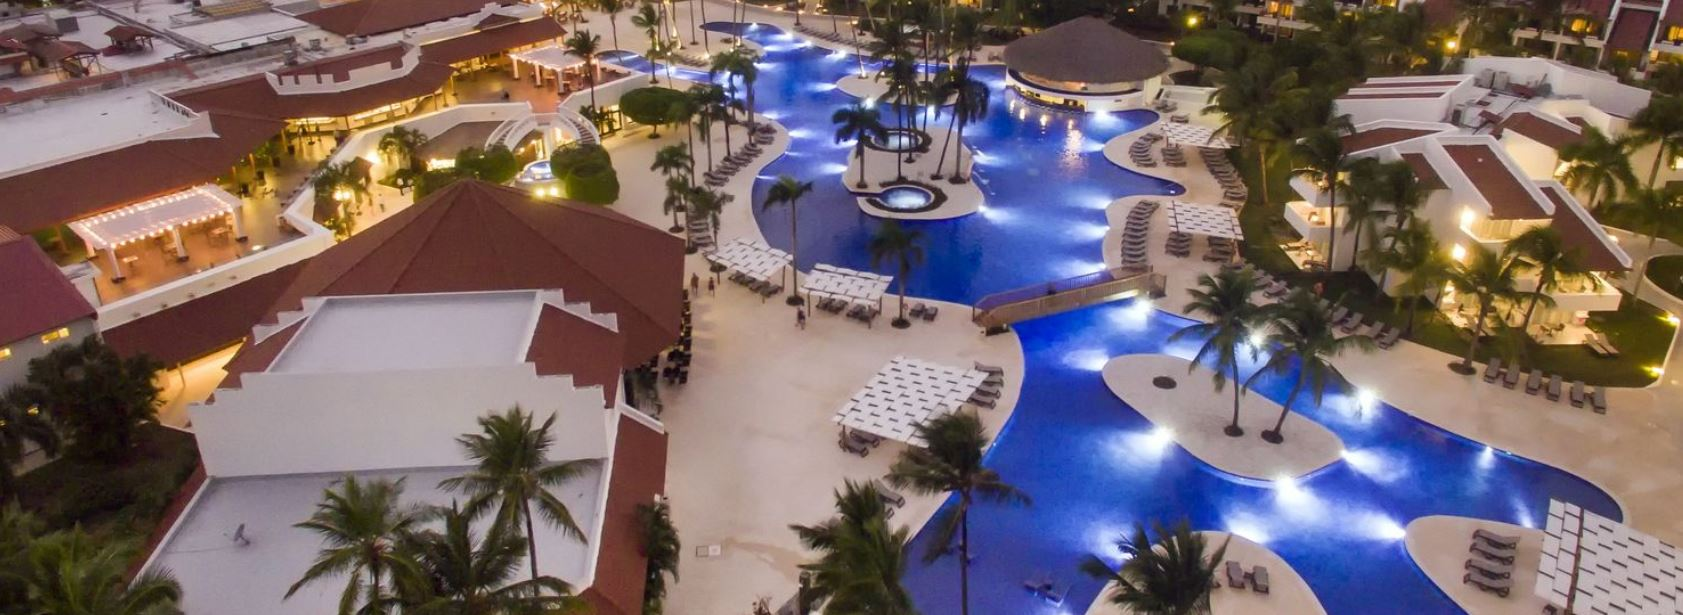 hotel_occidental_barcelo_punta_cana_piscinas_y_bares_b2bviajes.jpg?profile=RESIZE_710x